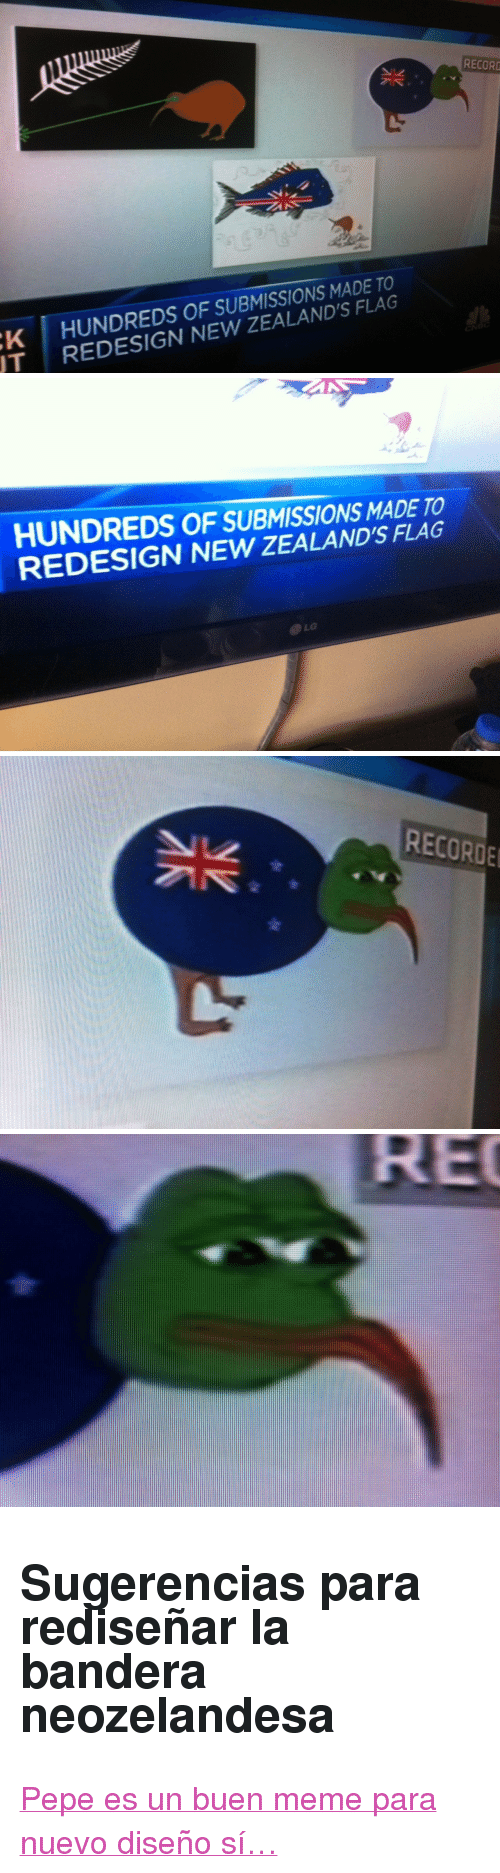 "Meme, Memes, and Pepe the Frog: RECORO  K HUNDREDS OF SUBMISSIONS MADE TO  T REDESIGN NEW ZEALAND'S FLAG   HUNDREDS OF SUBMISSIONS MADE TO  REDESIGN NEW ZEALAND'S FLAG   RECORDE <h2>Sugerencias para rediseñar la bandera neozelandesa</h2><p><a href=""http://knowyourmeme.com/memes/pepe-the-frog"">Pepe es un buen meme para nuevo diseño sí…</a></p>"